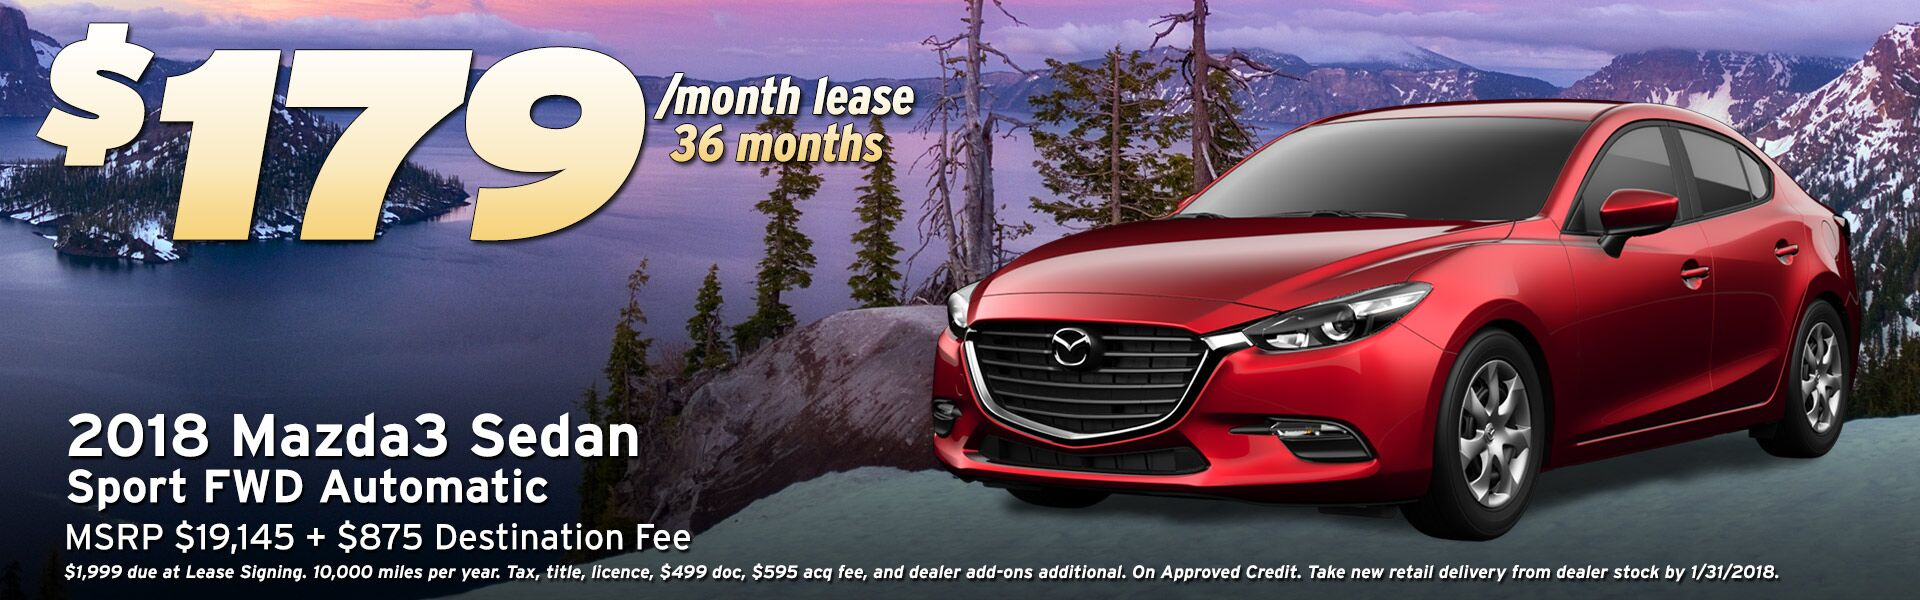 Mazda Las Vegas >> Mazda Dealership Las Vegas Nv Used Cars Earnhardt Mazda Las Vegas